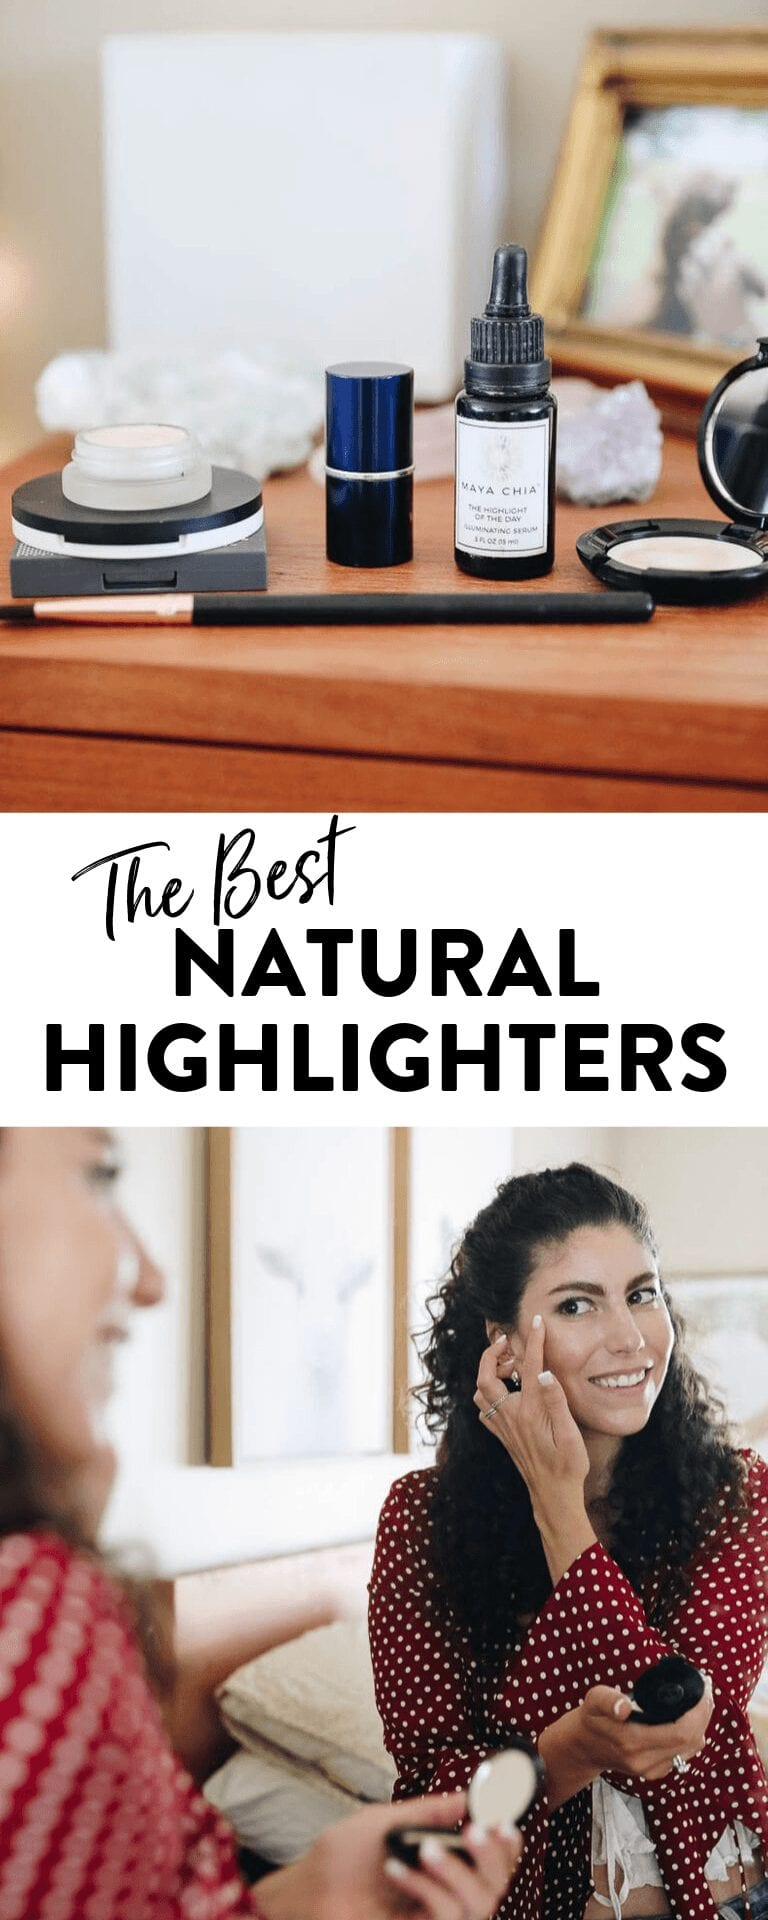 No makeup look is complete without highlighter! Find the best natural highlighters for you in this list of non-toxic, clean beauty highlighters #cleanbeauty